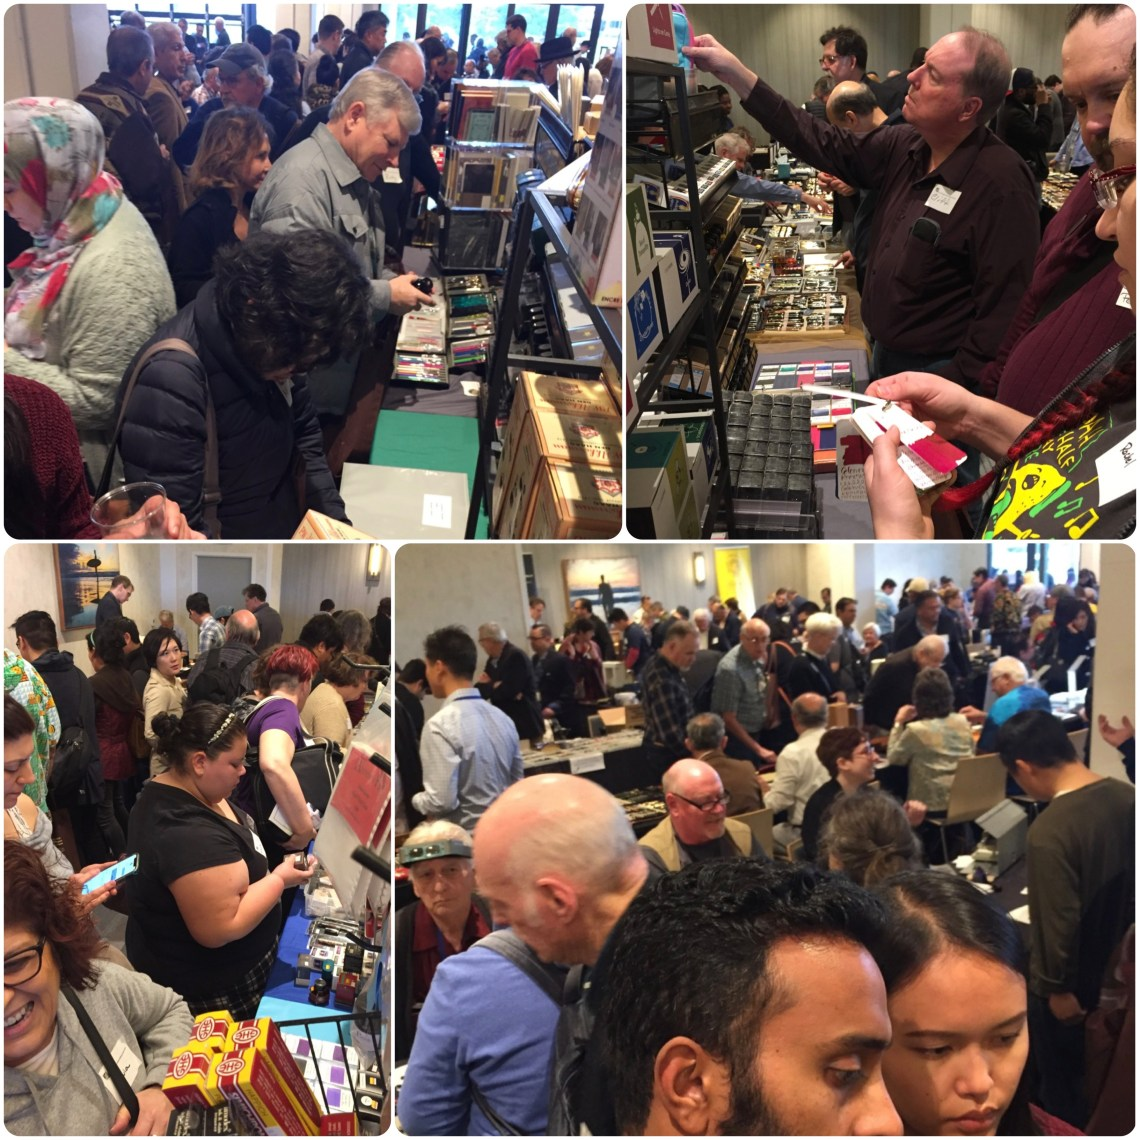 Crowds on Sunday at the LA Pen Show